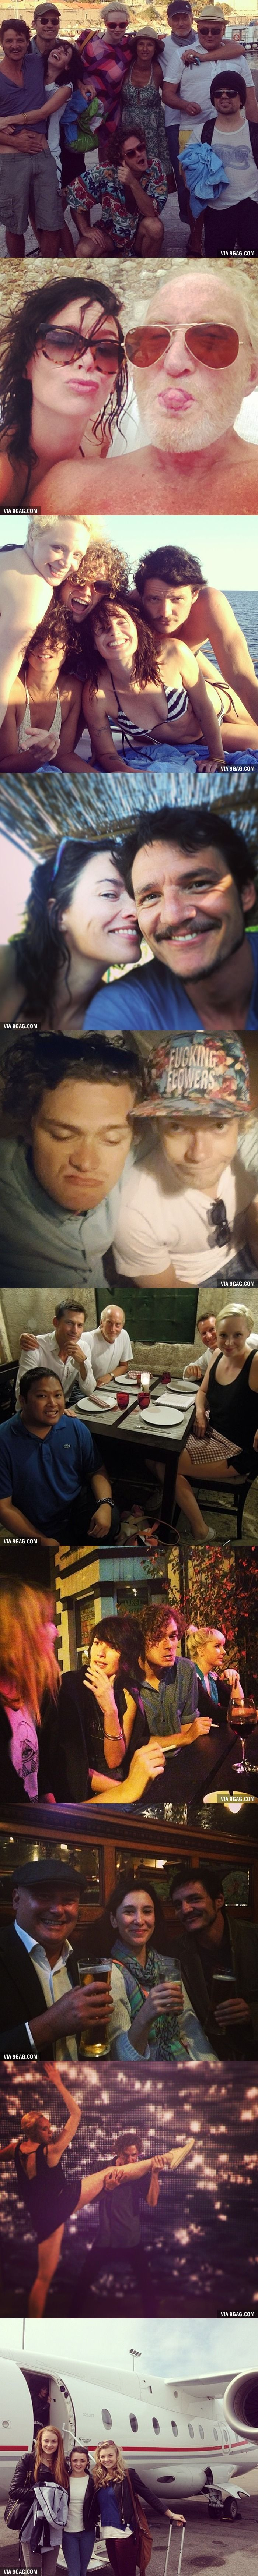 Just some people on vacation... wait, they are the cast from Game of Thrones!